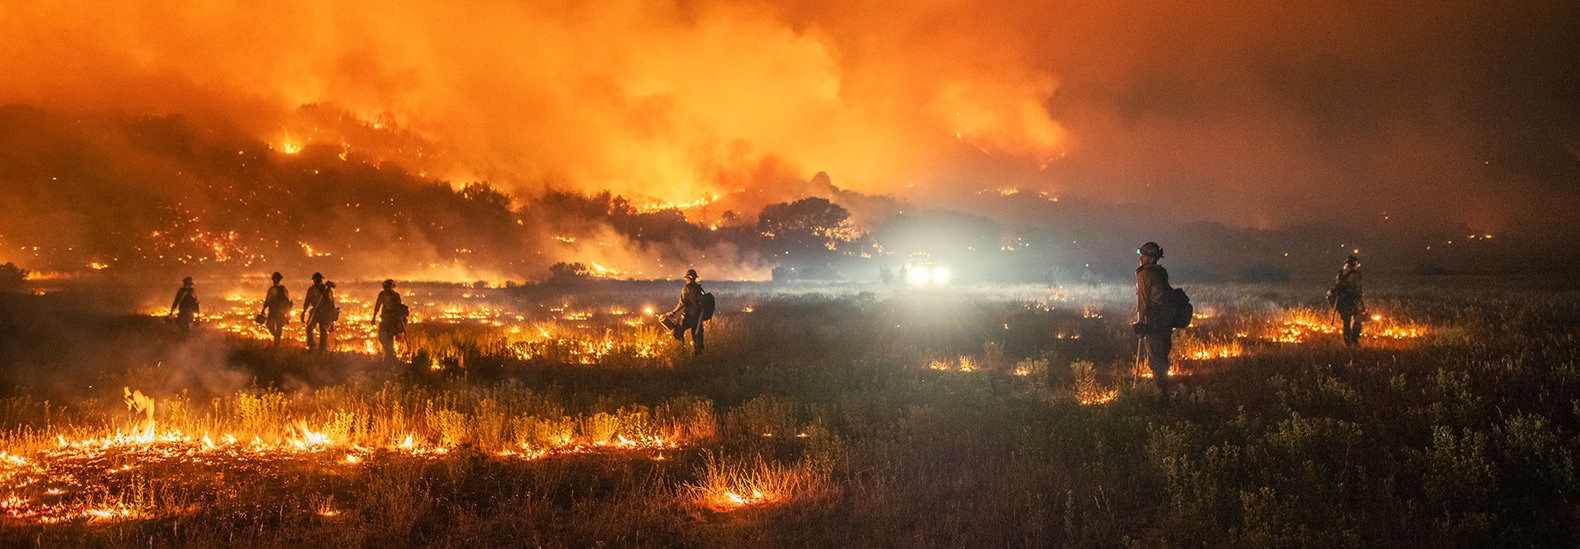 Rocky Mountains experience more severe and frequent wildfires | Tech News